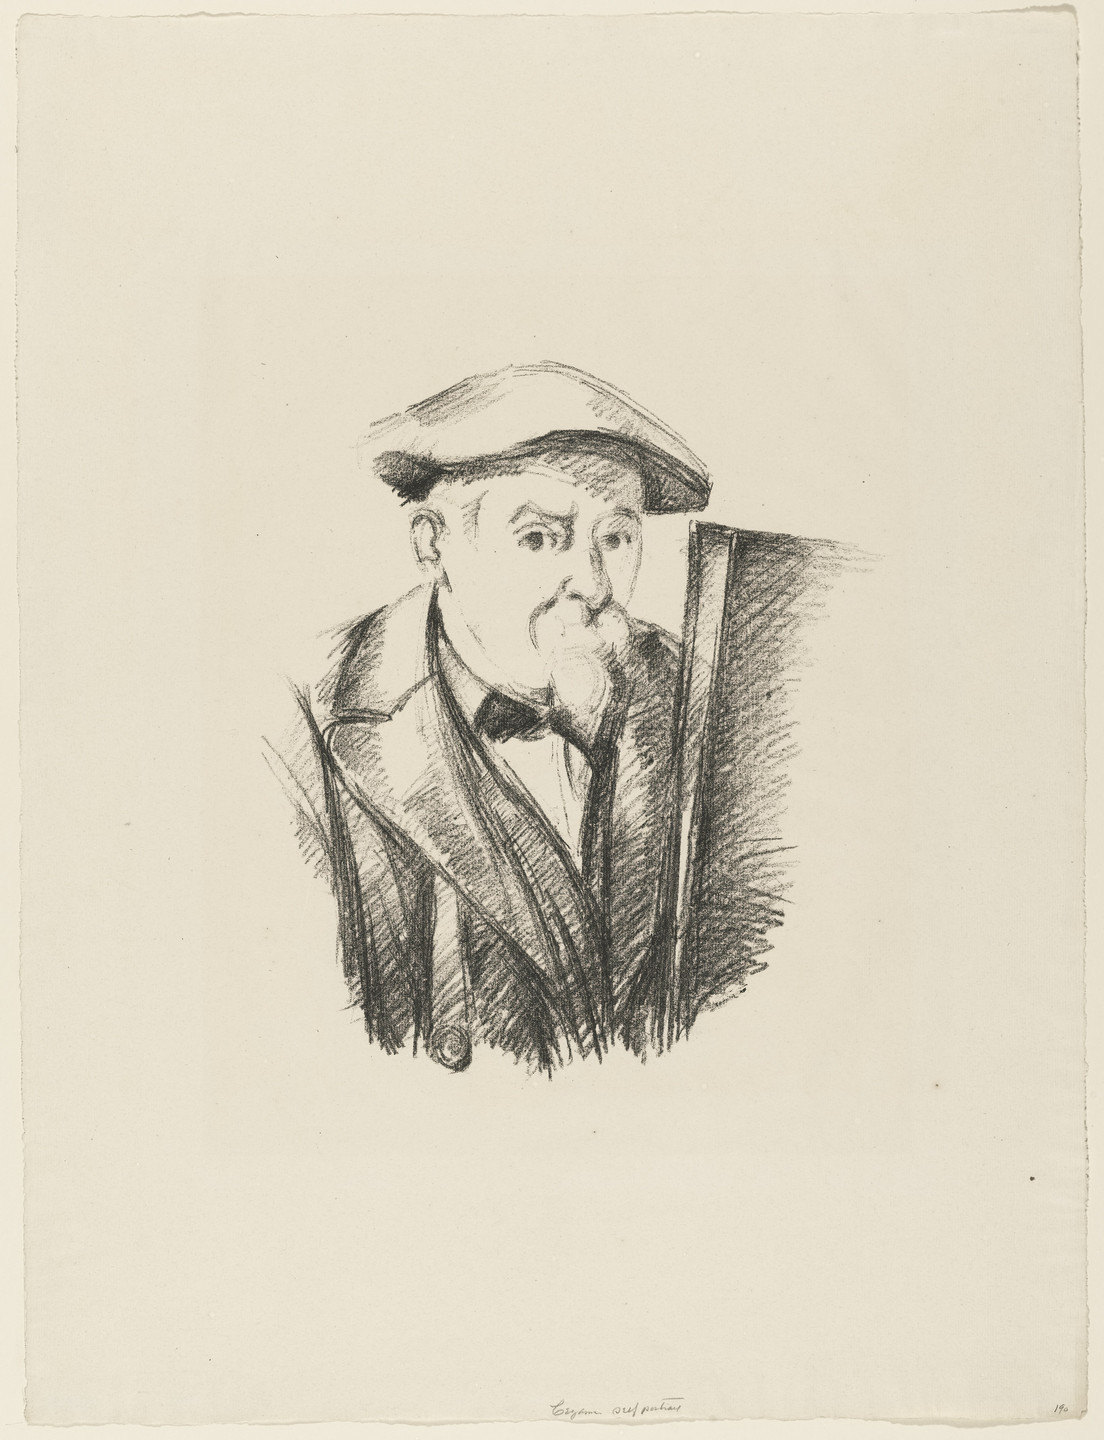 Paul Cézanne. Portrait of Cézanne. c. 1898–1900